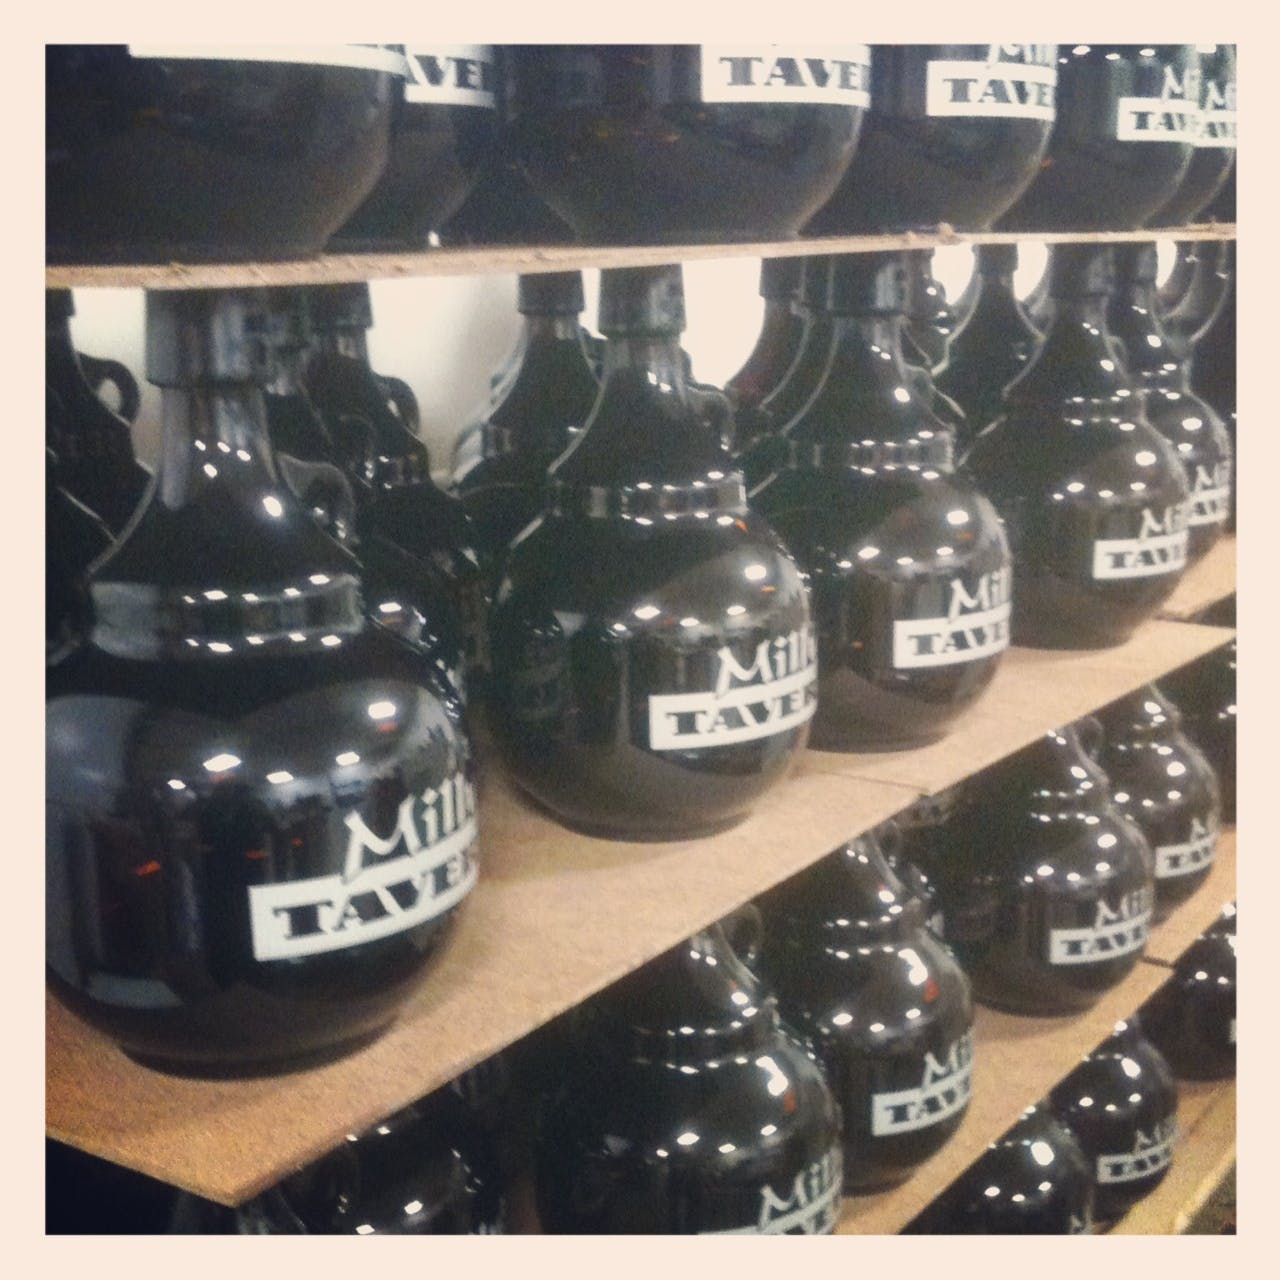 2L Palla Growler sold by Flour City Growlers